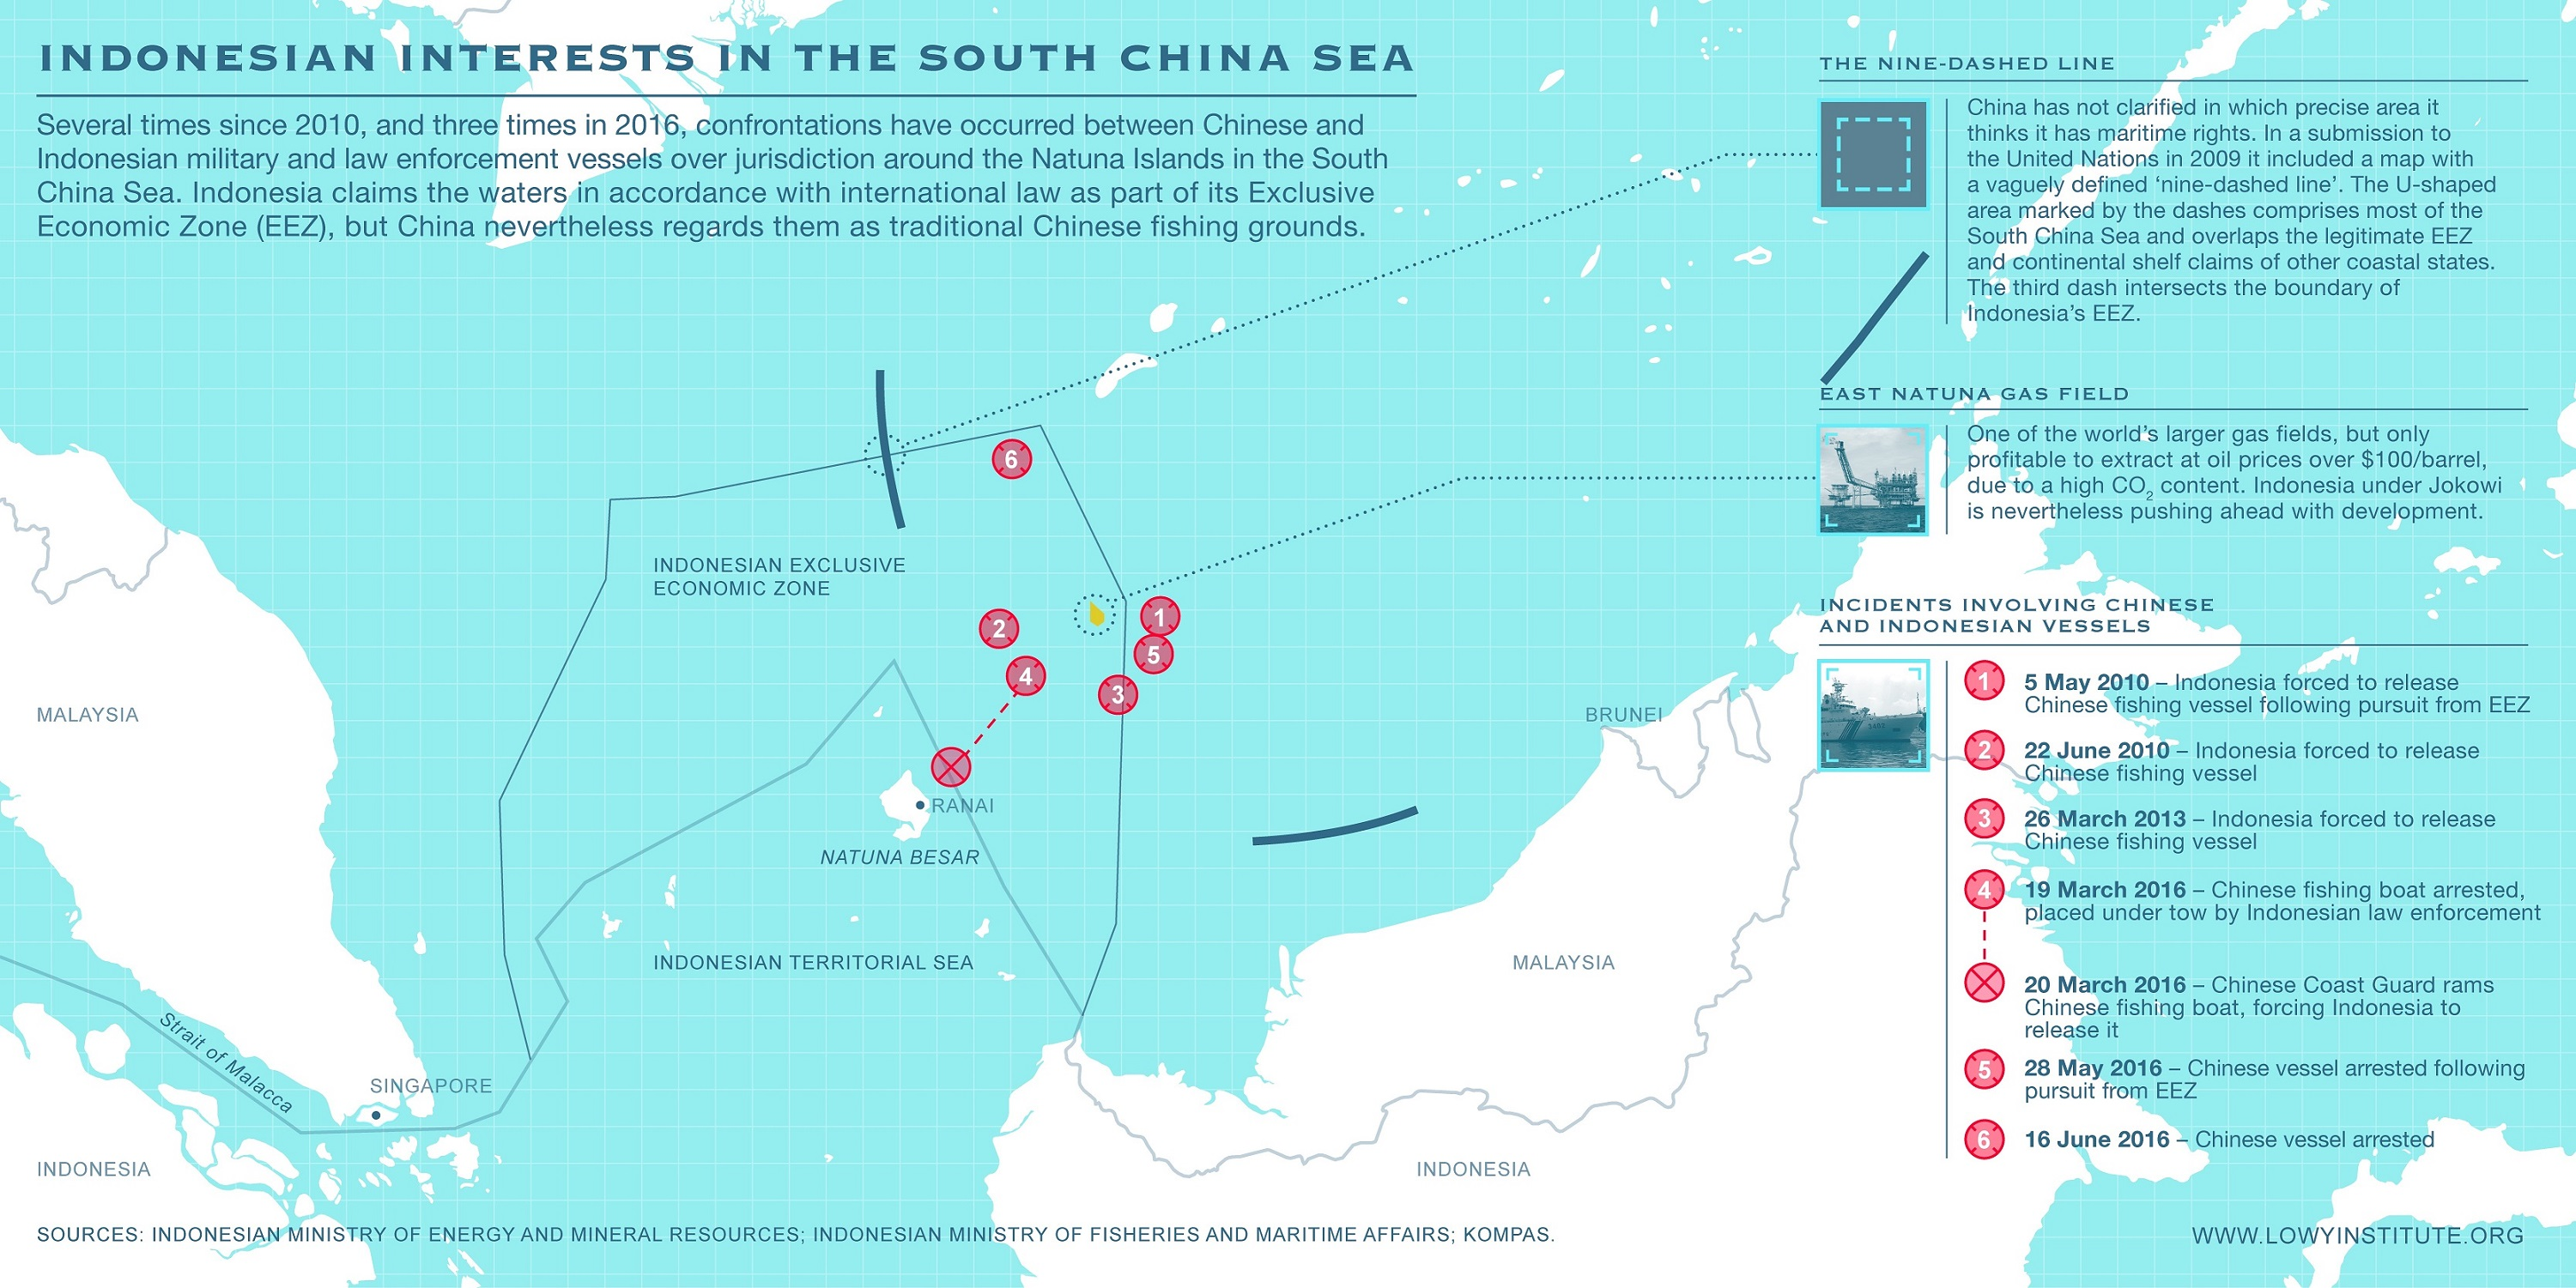 Indonesia increases maritime defense in south china sea as chinas navy grows stronger and its large fishing fleets move further south in search of lucrative fish stocks jakartas concerns have grown gumiabroncs